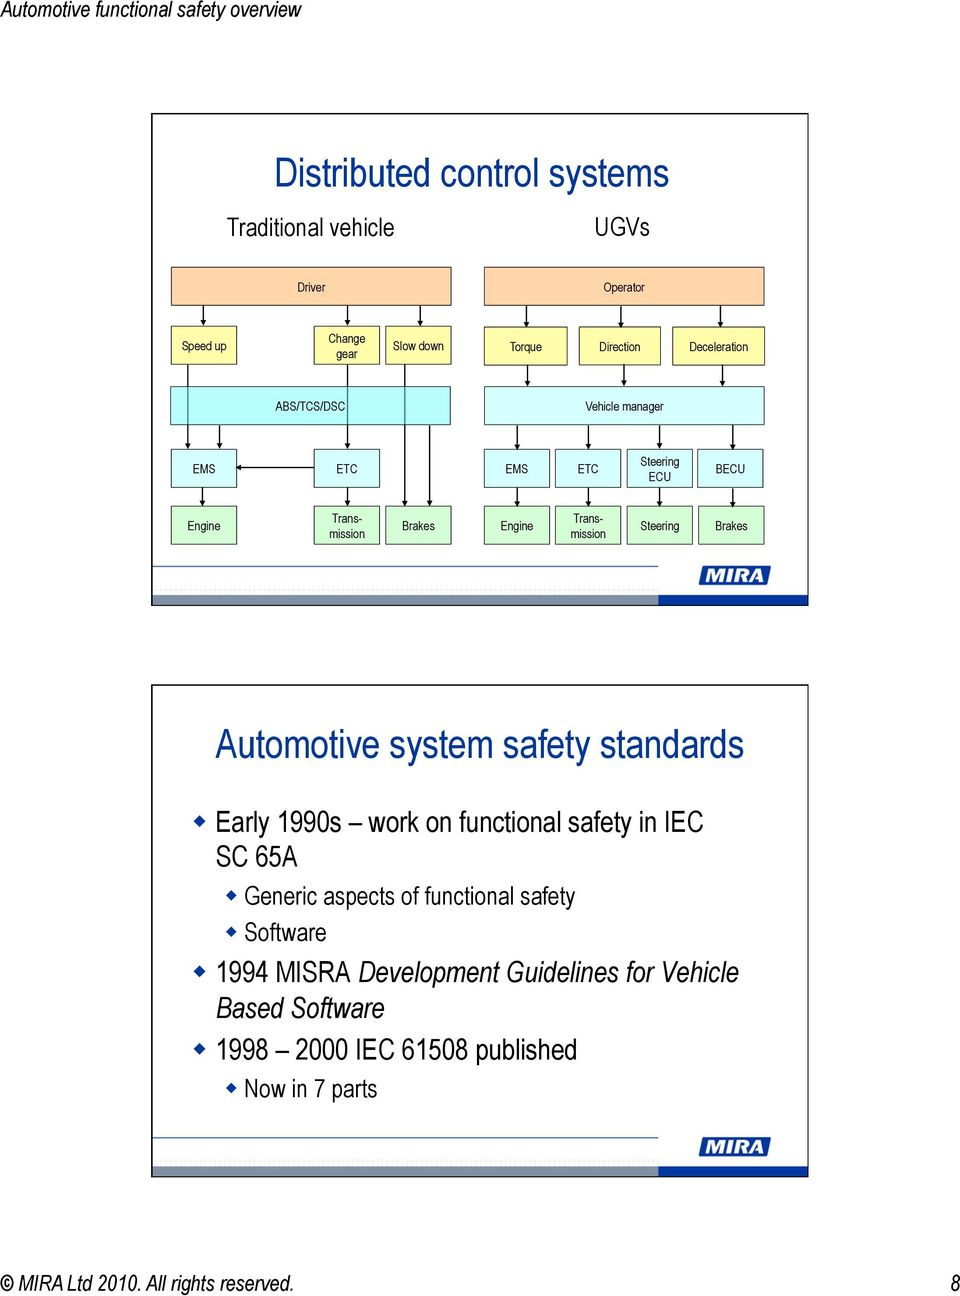 Automotive system safety standards Early 1990s work on functional safety in IEC SC 65A Generic aspects of functional safety Software